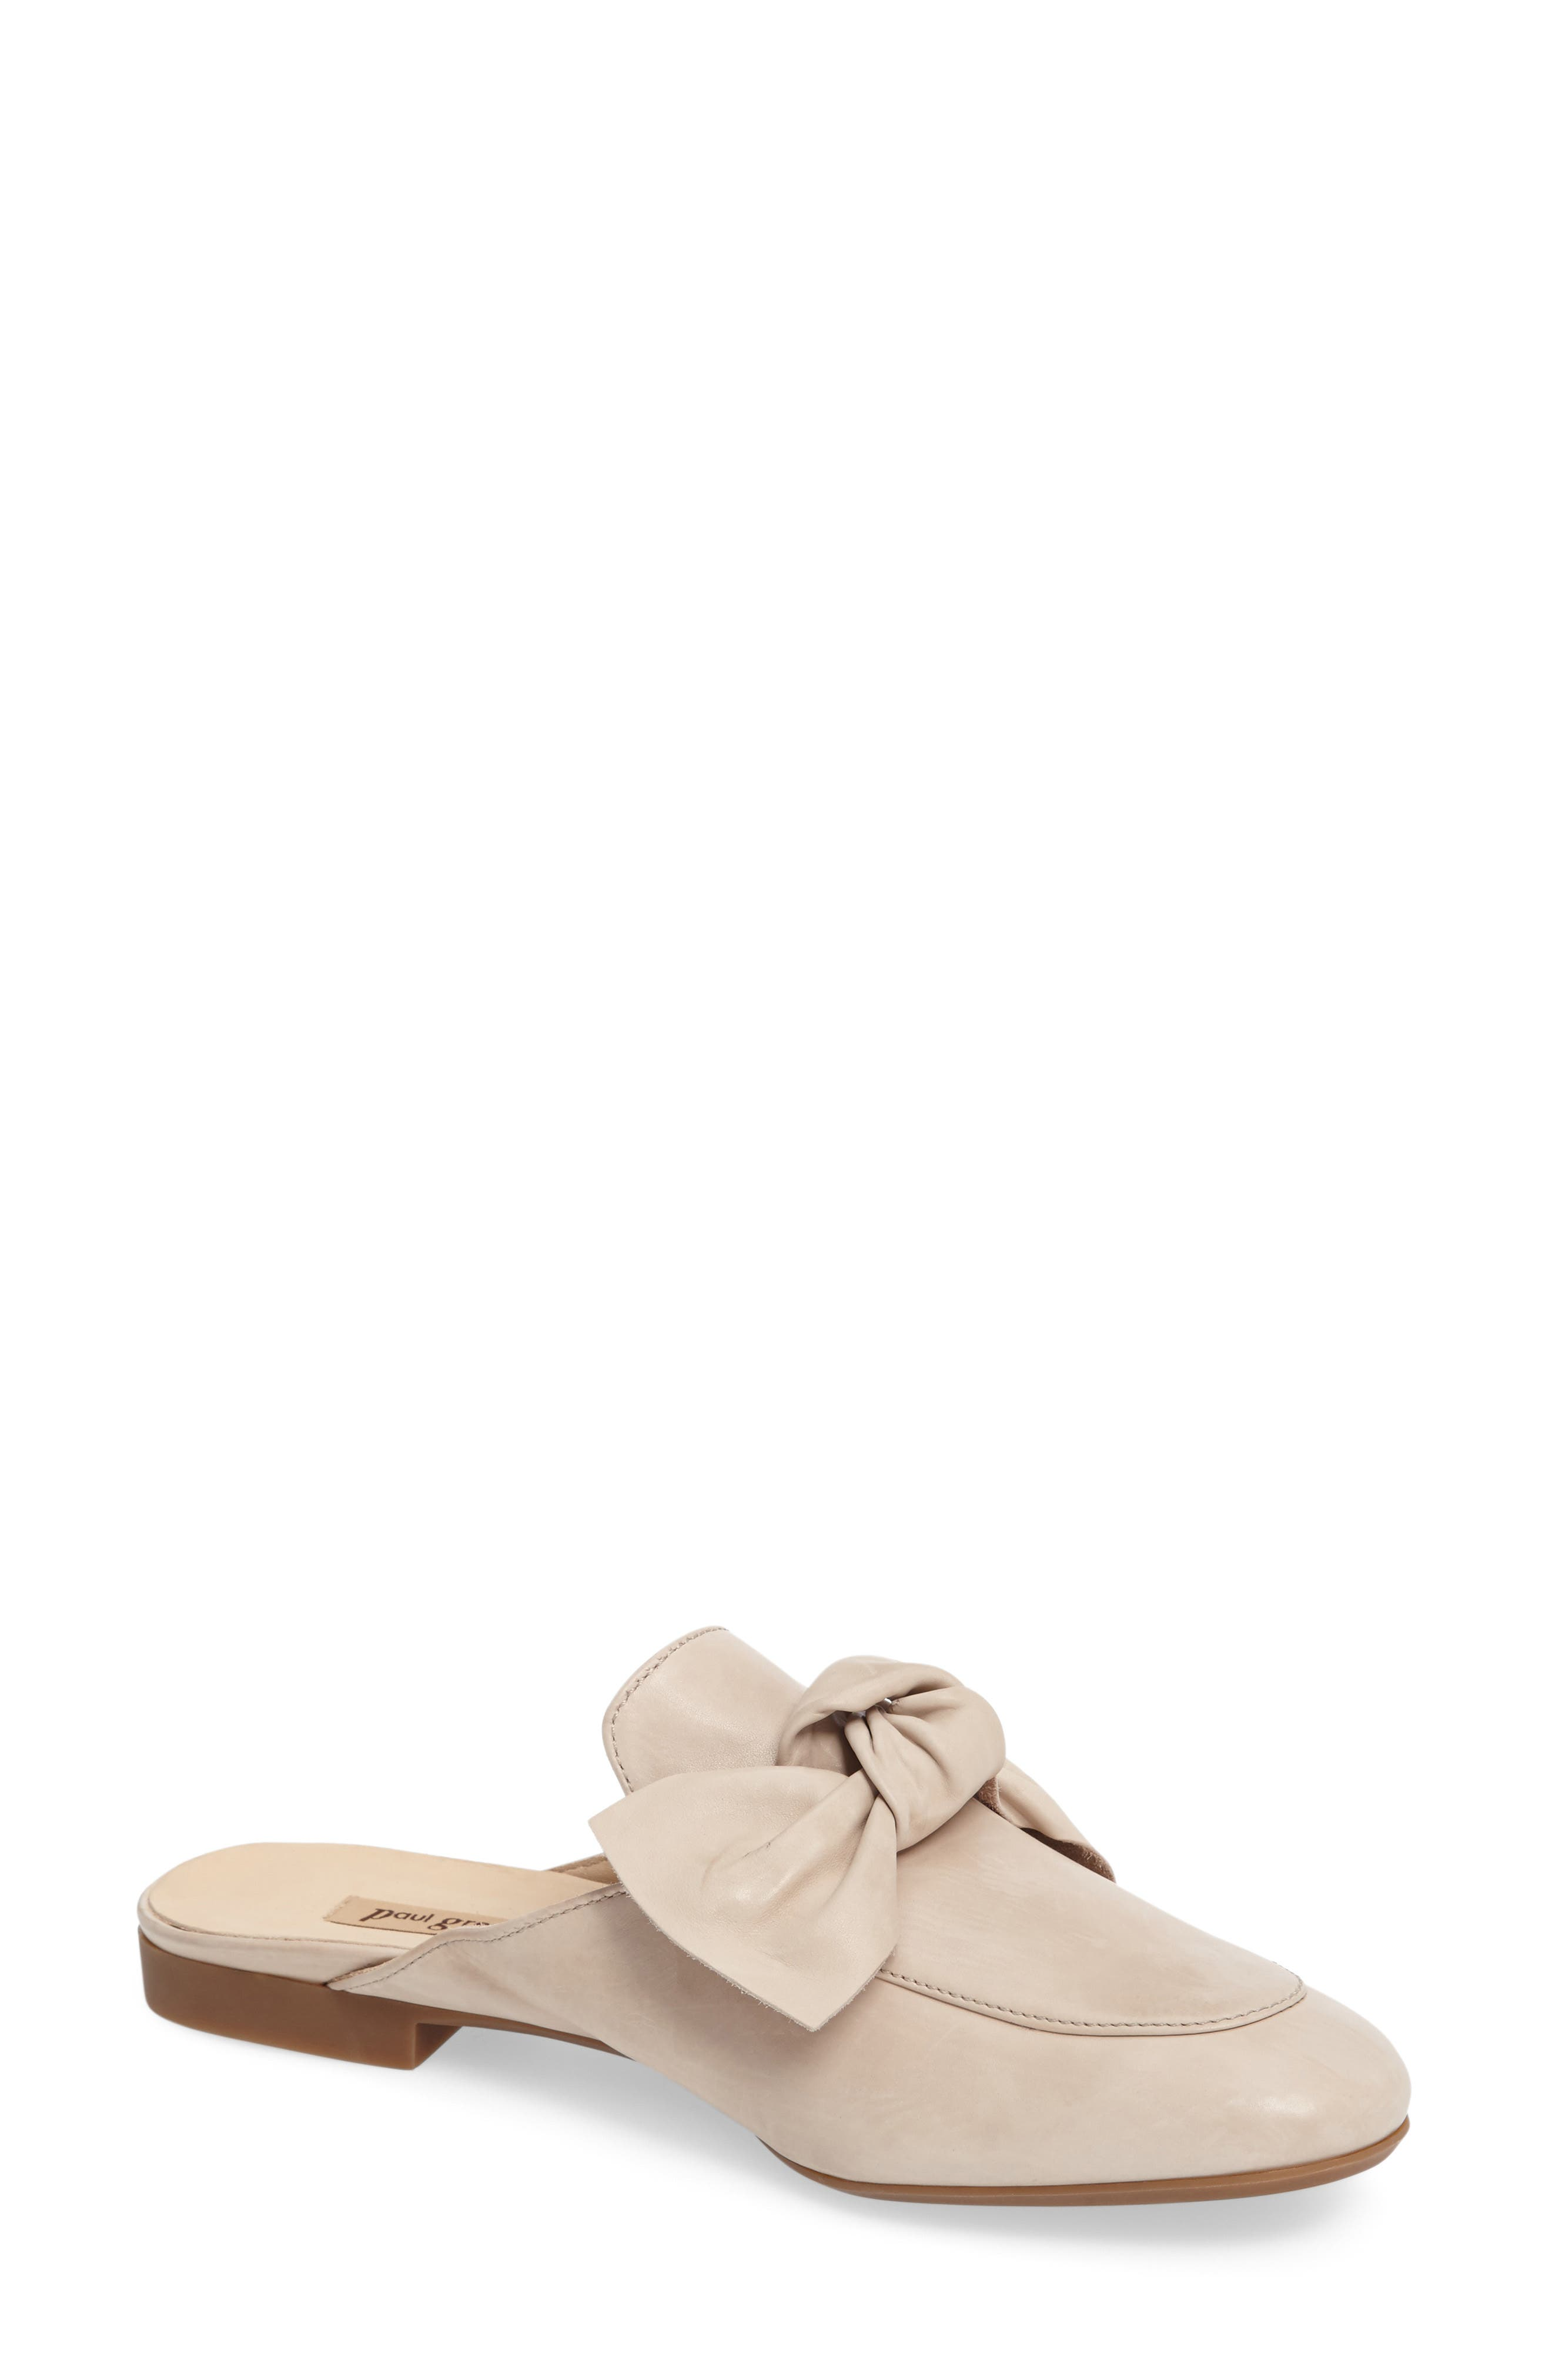 Mary Bow Mule Loafer,                             Main thumbnail 2, color,